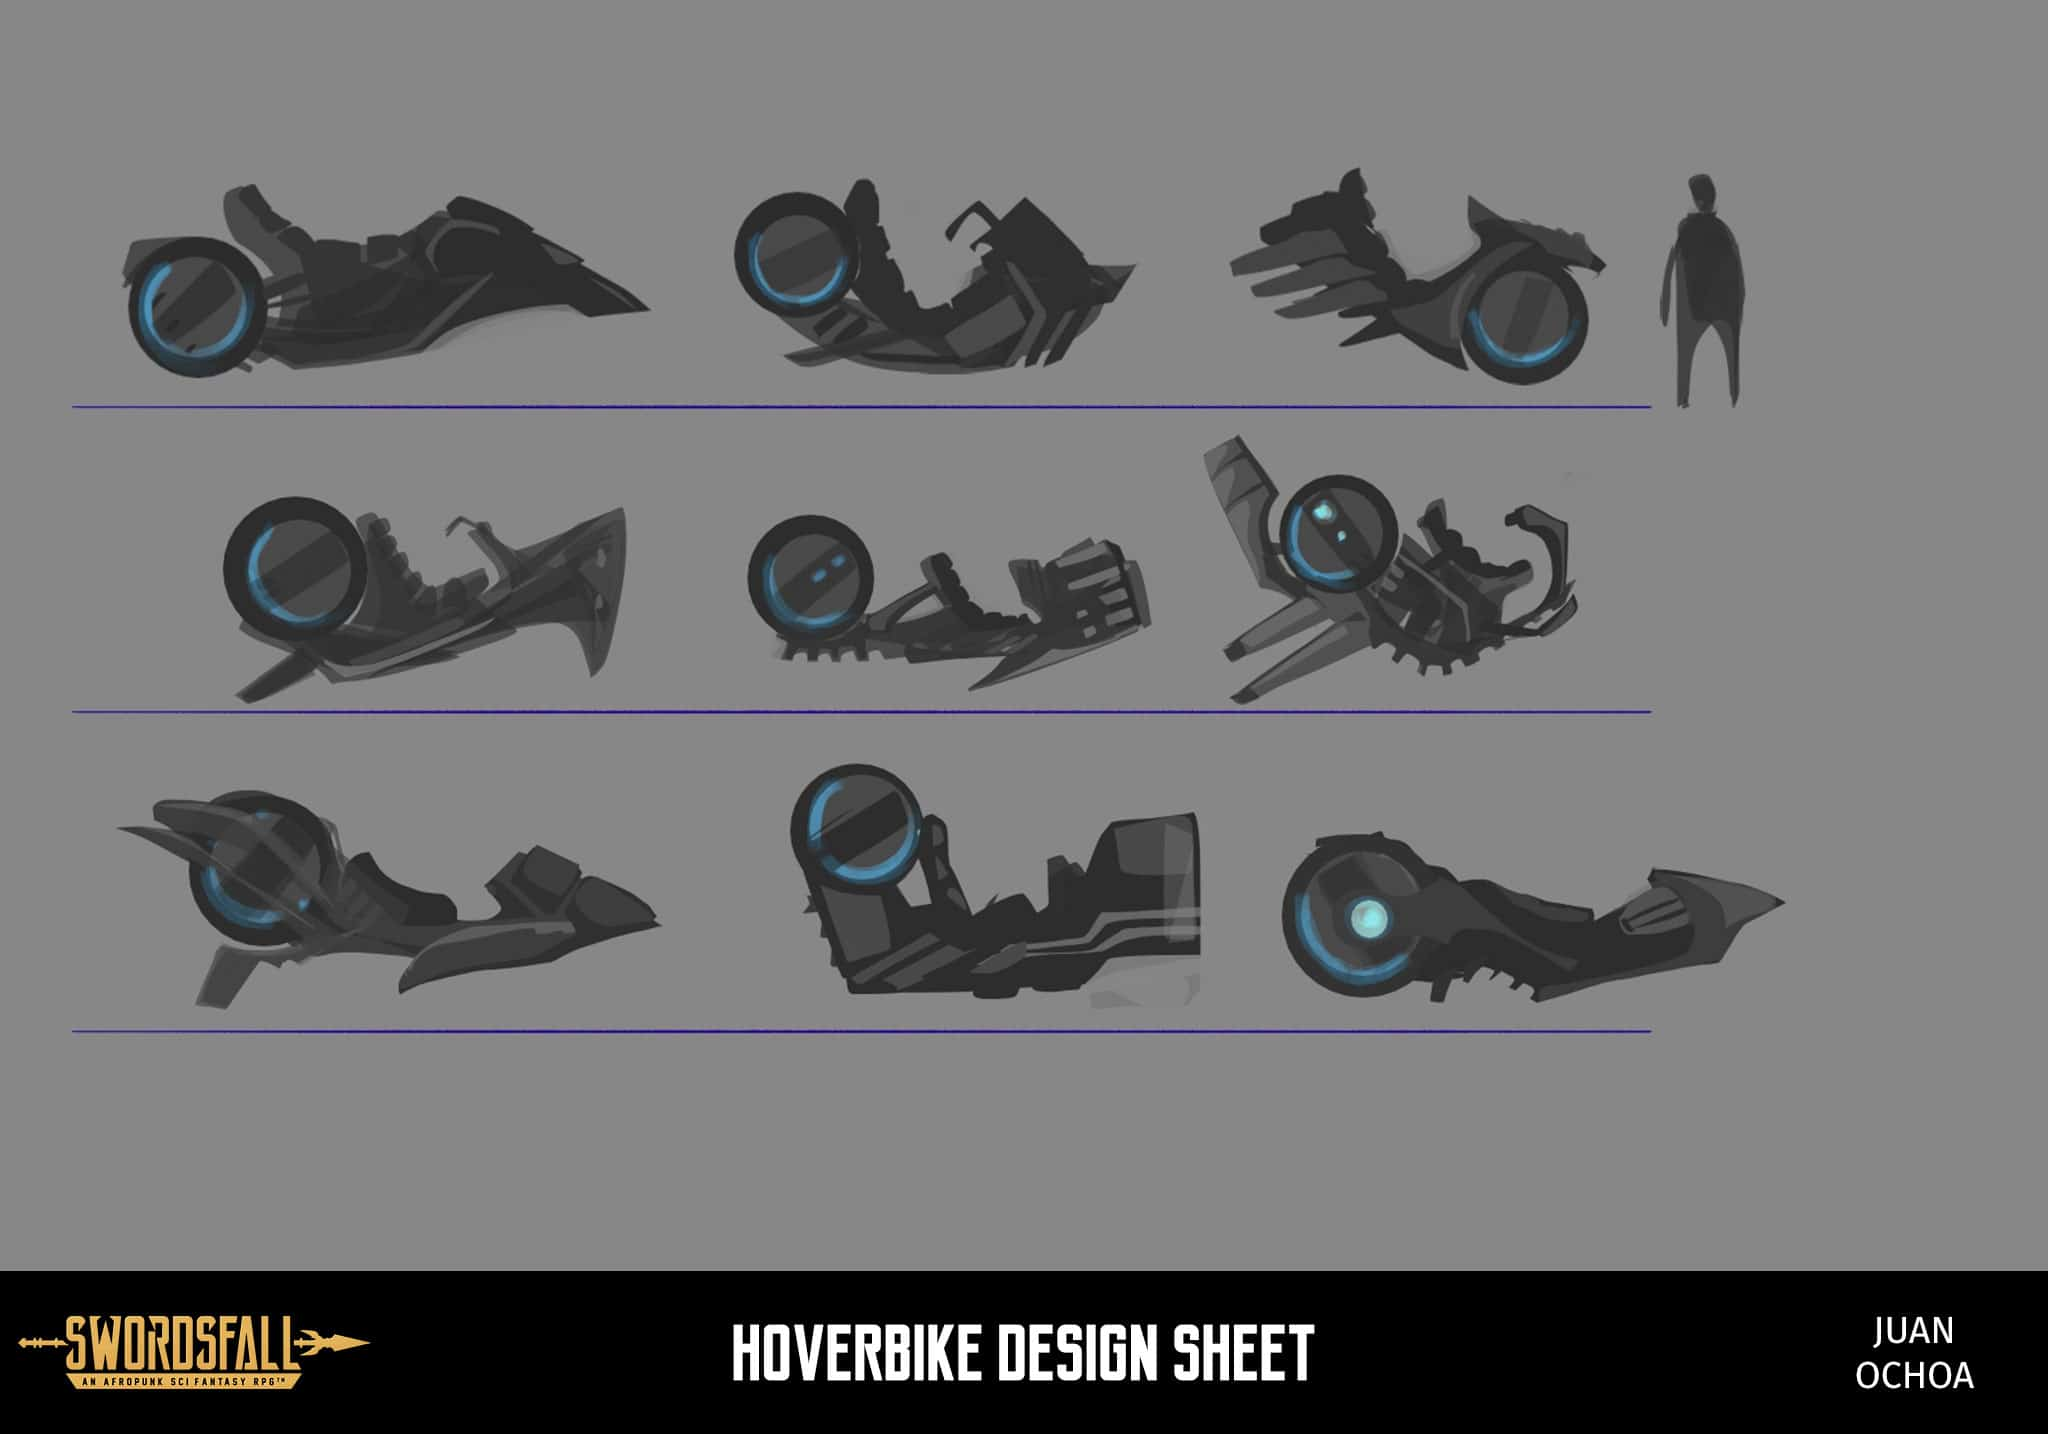 hoverbike design sheet web - Patreon Exclusive | Hoverbike Design Sheet